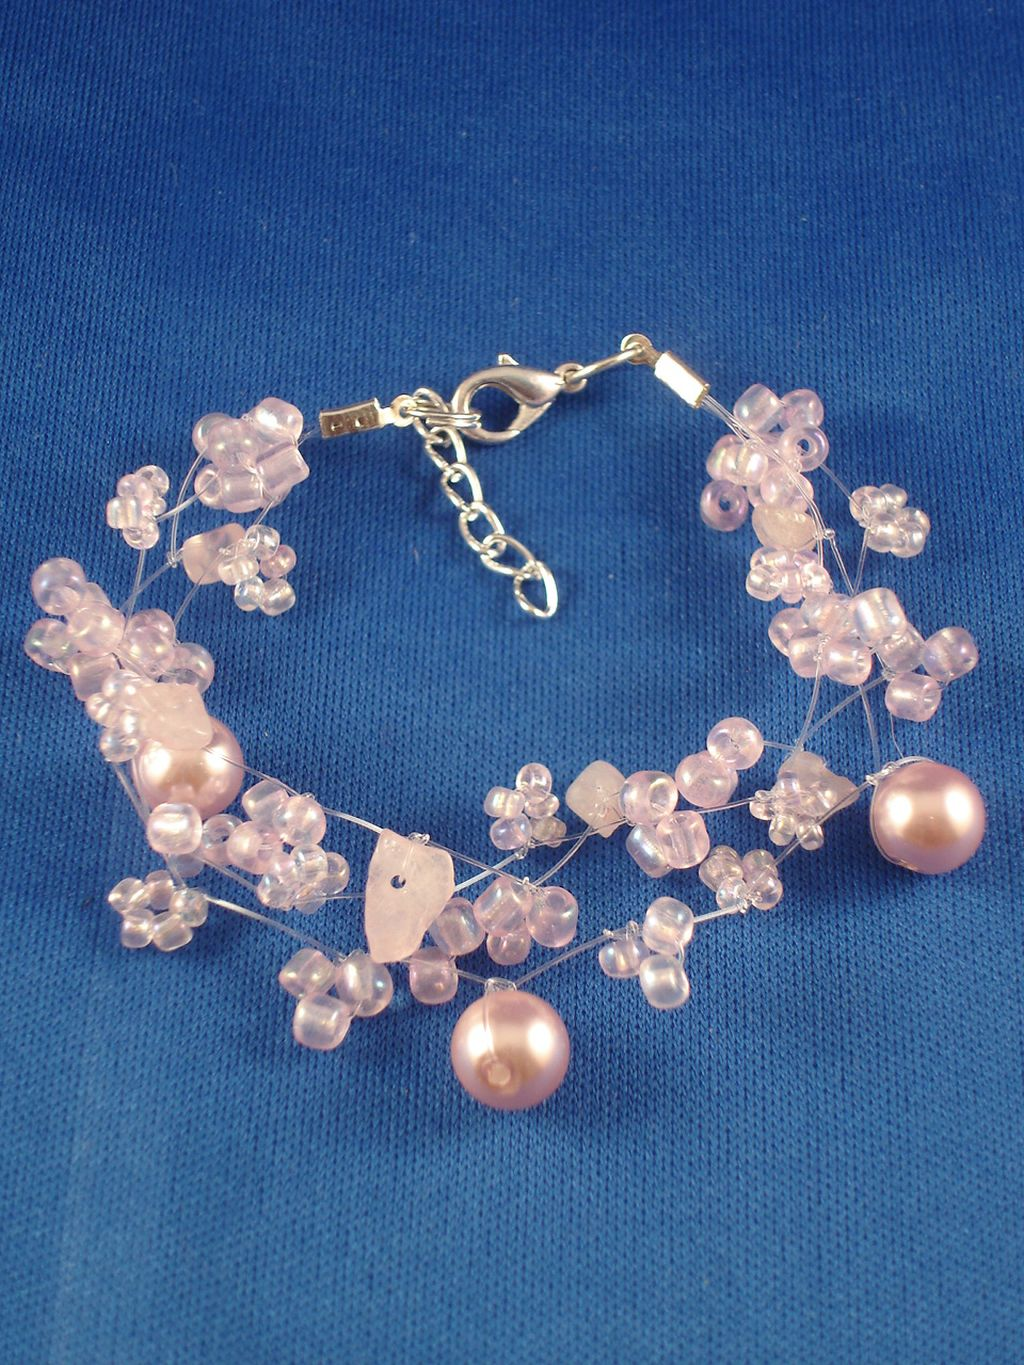 Light Pink Contemporary Bracelet, Artificial Pearls, Genuine Stones, Beads